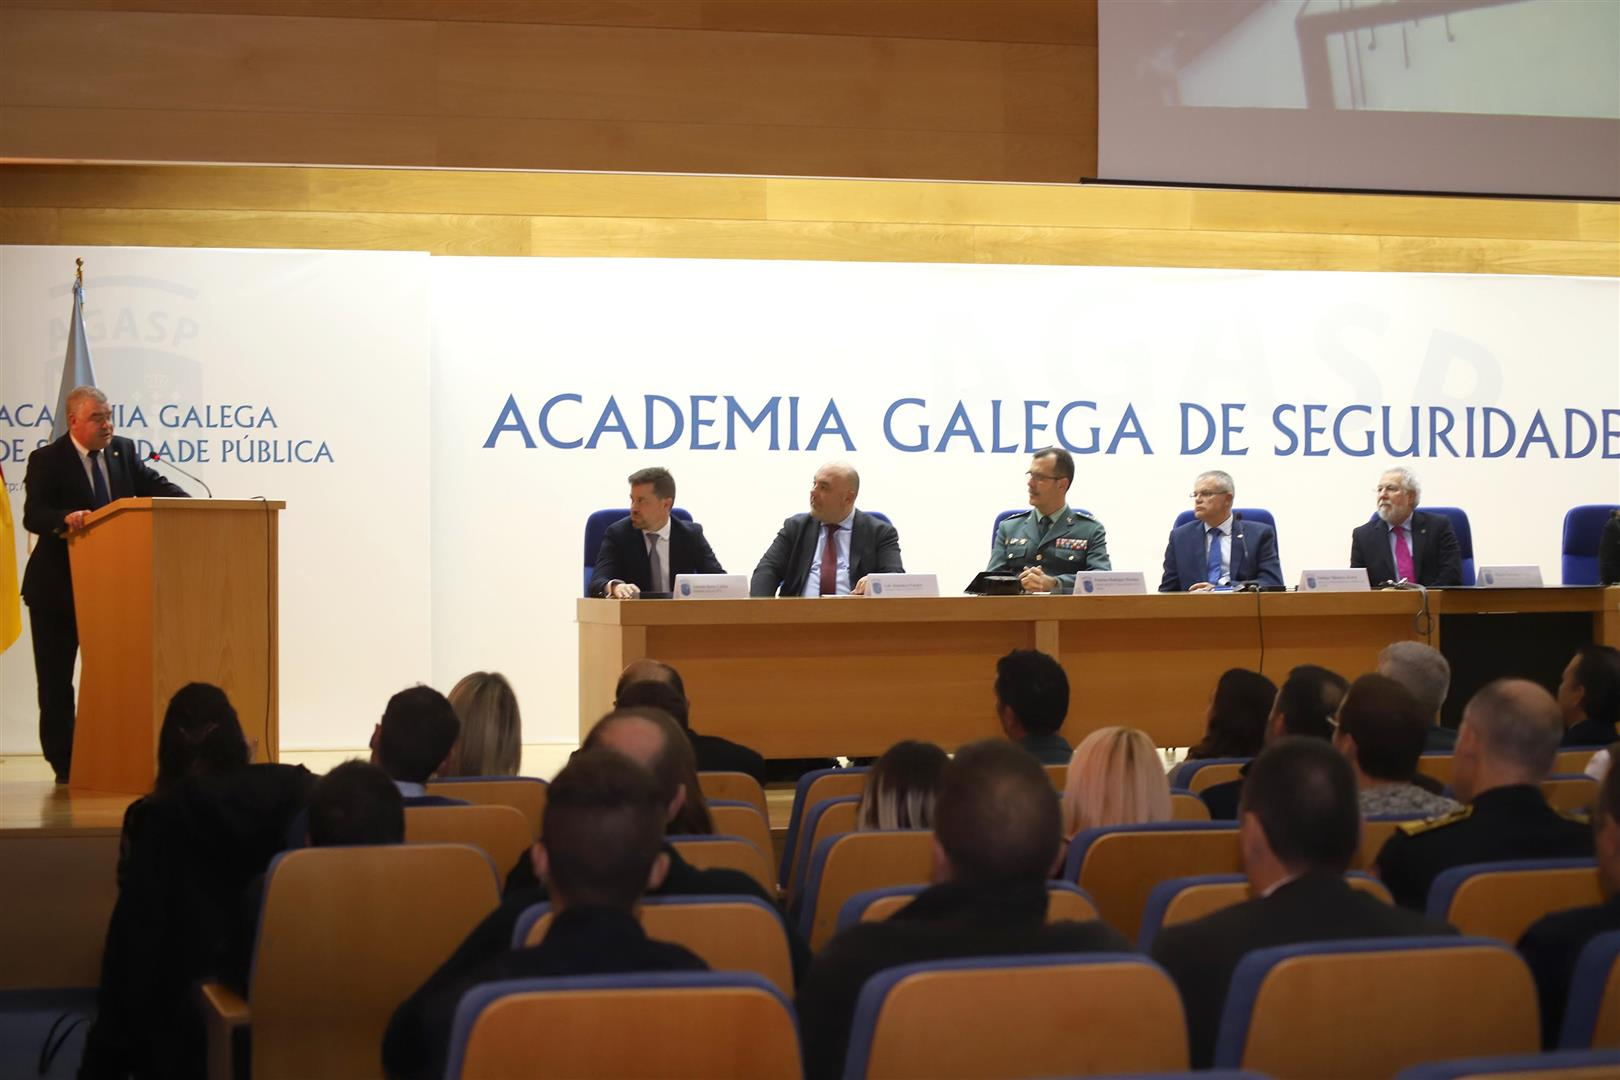 O presidente do Parlamento recibe a Medalla de Ouro do Mérito Académico e Profesional do Instituto de Criminalística